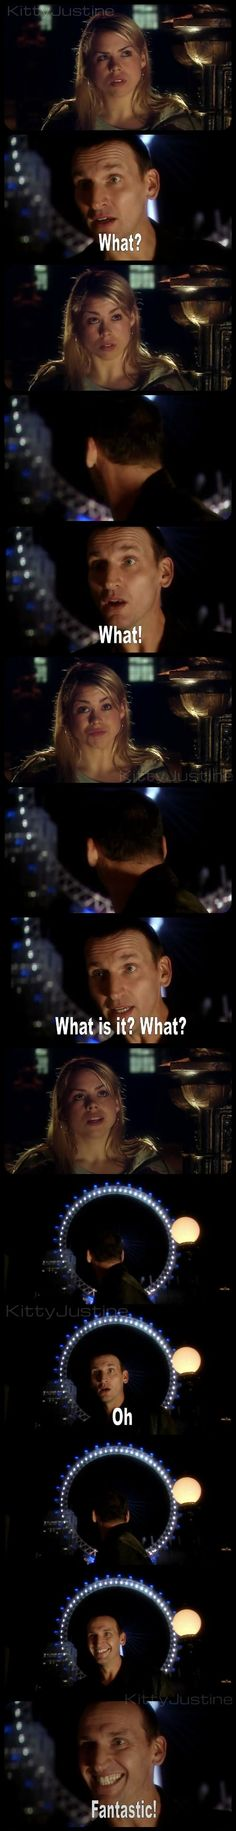 Christopher Eccleston as the Ninth Doctor with Billie Piper as Rose Tyler… Doctor Who, The Doctor, Serie Doctor, Ninth Doctor, Ella Enchanted, Christopher Eccleston, Out Of Touch, Fandoms, Don't Blink